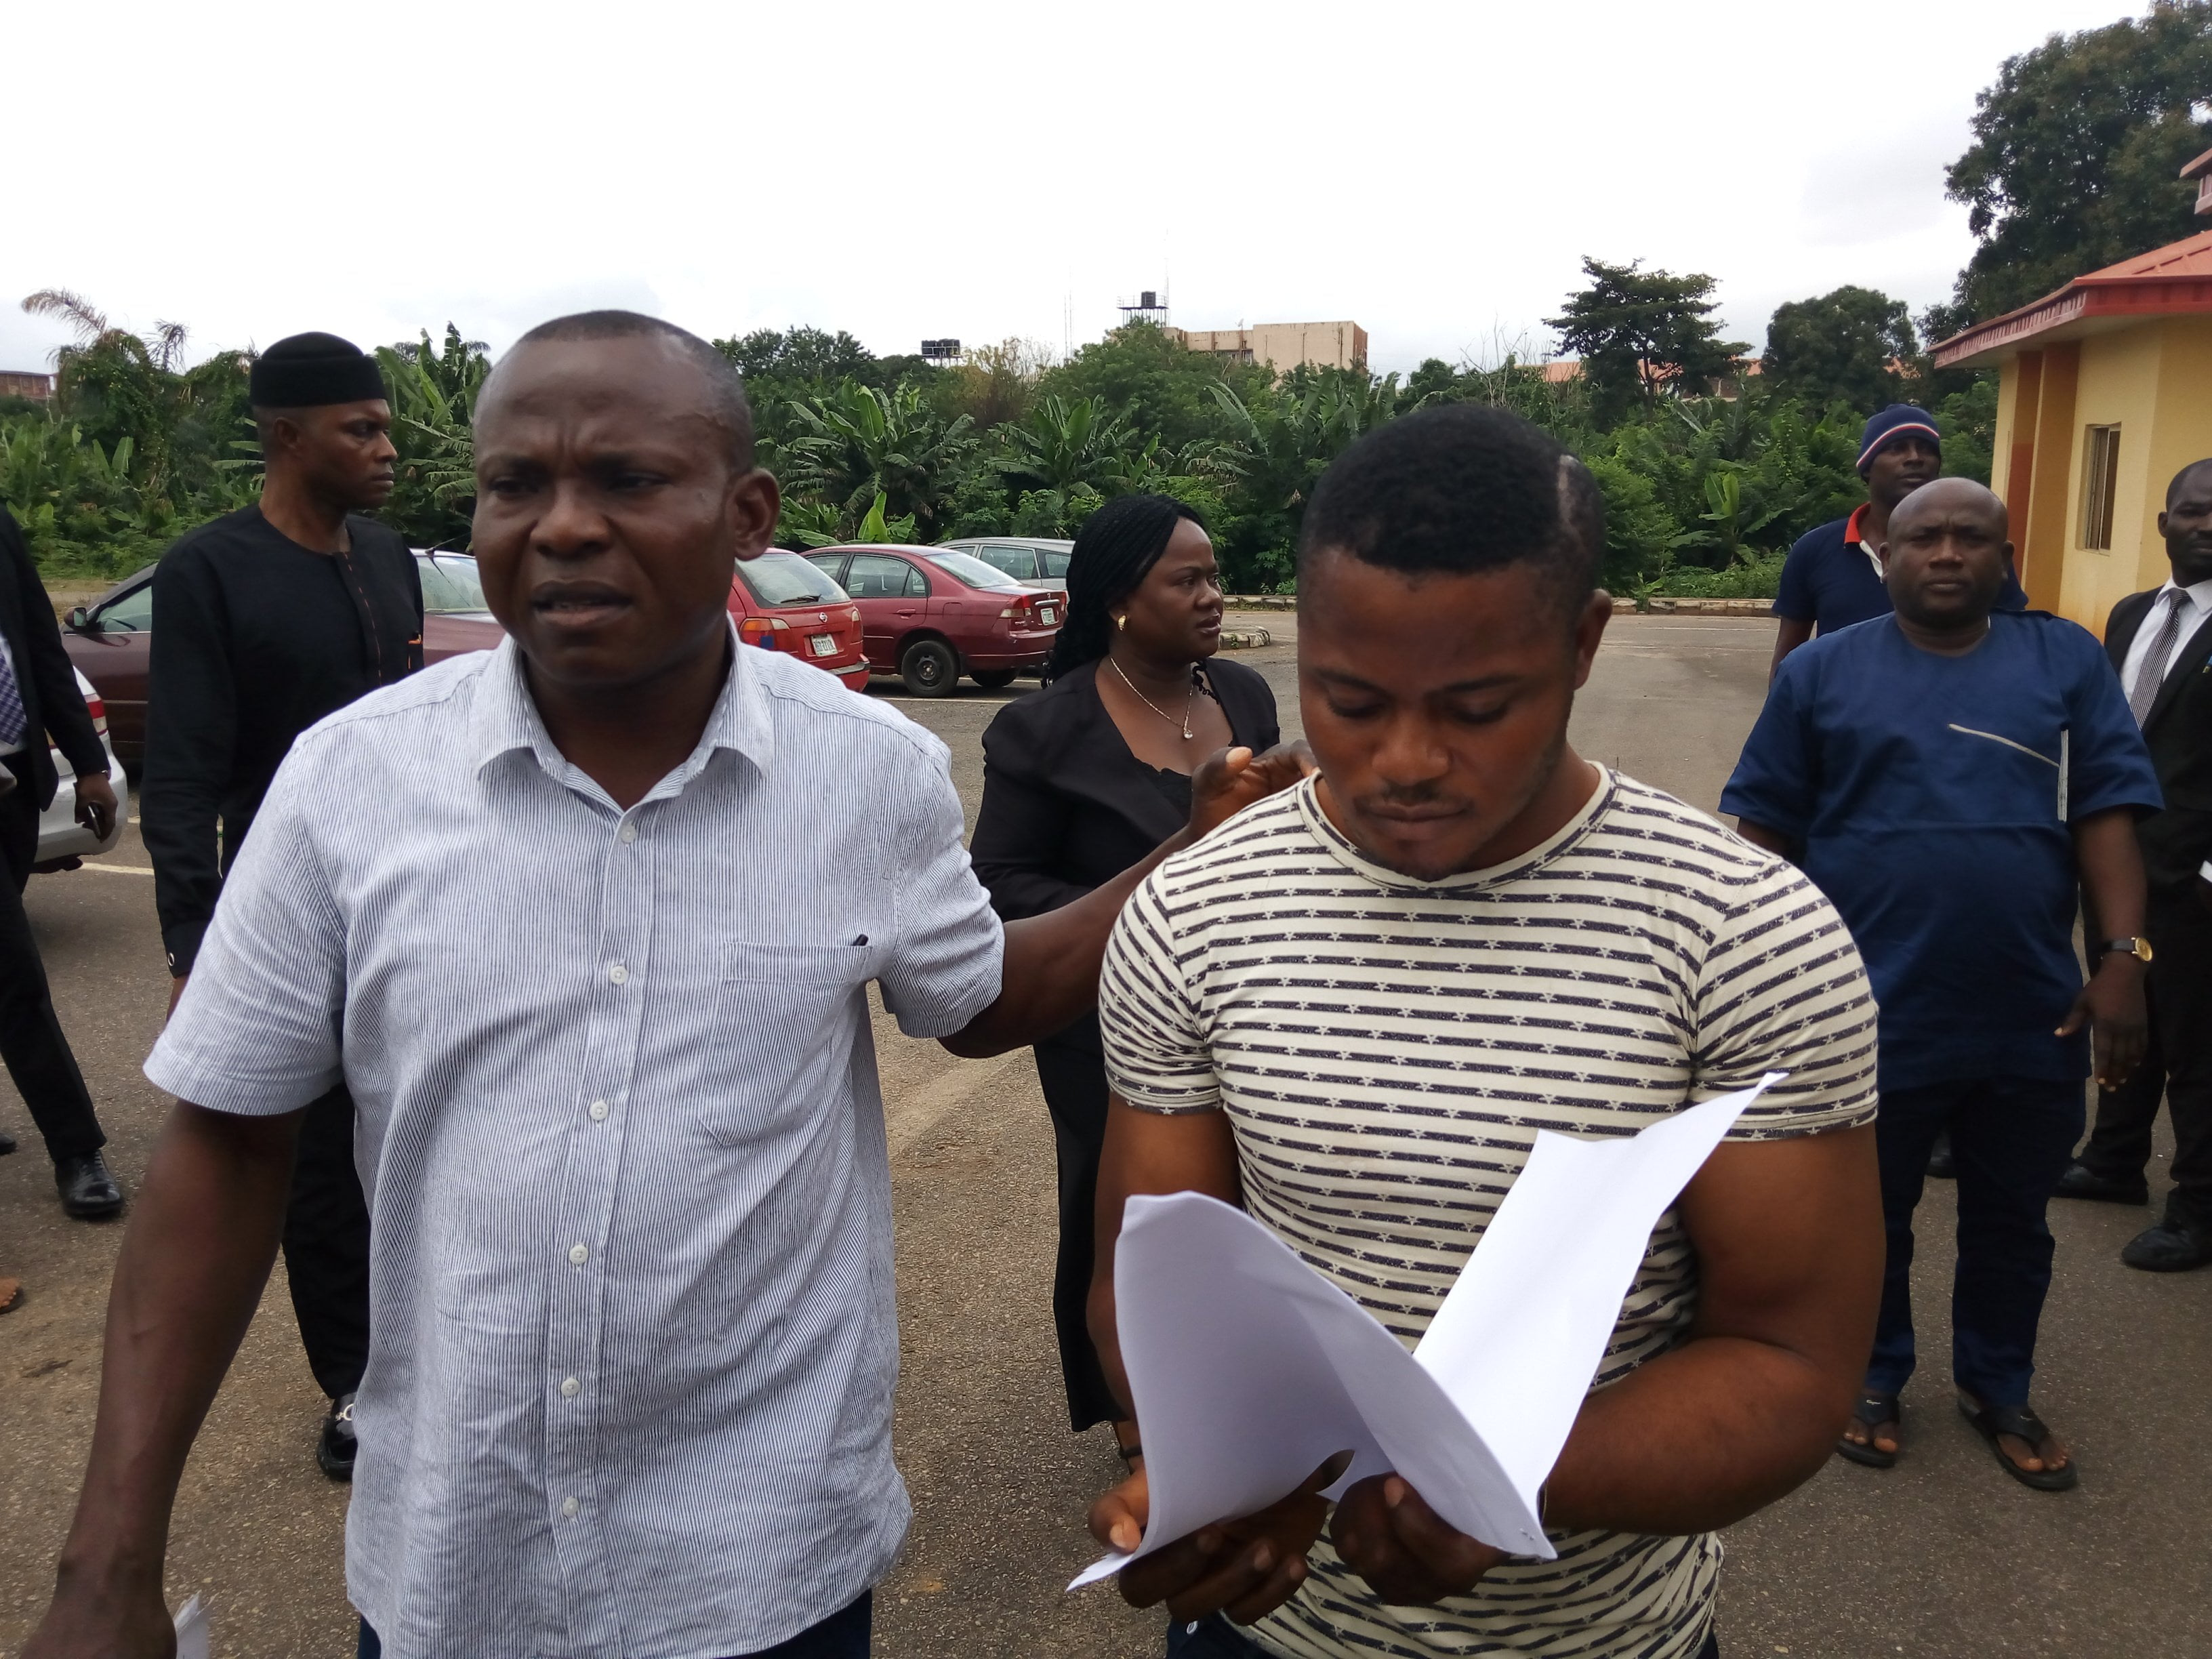 arrested - Soldier Accused Of Raping University Student Arraigned In Court (Photos)